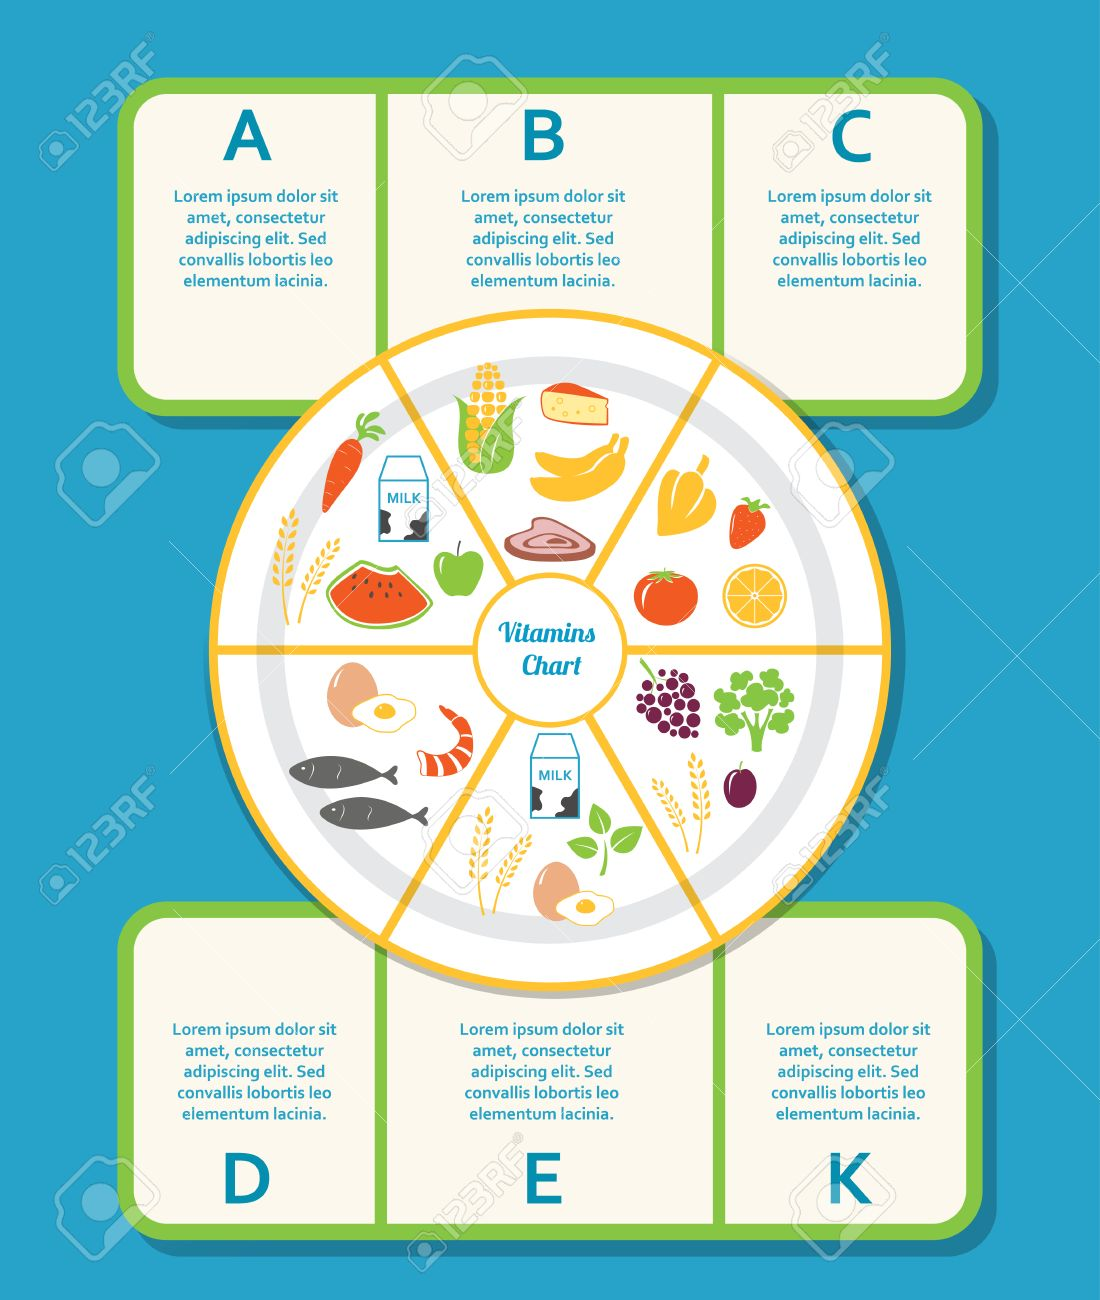 Food and vitamins infographics chart healthy diet and food concept food and vitamins infographics chart healthy diet and food concept stock vector 59990951 ccuart Image collections